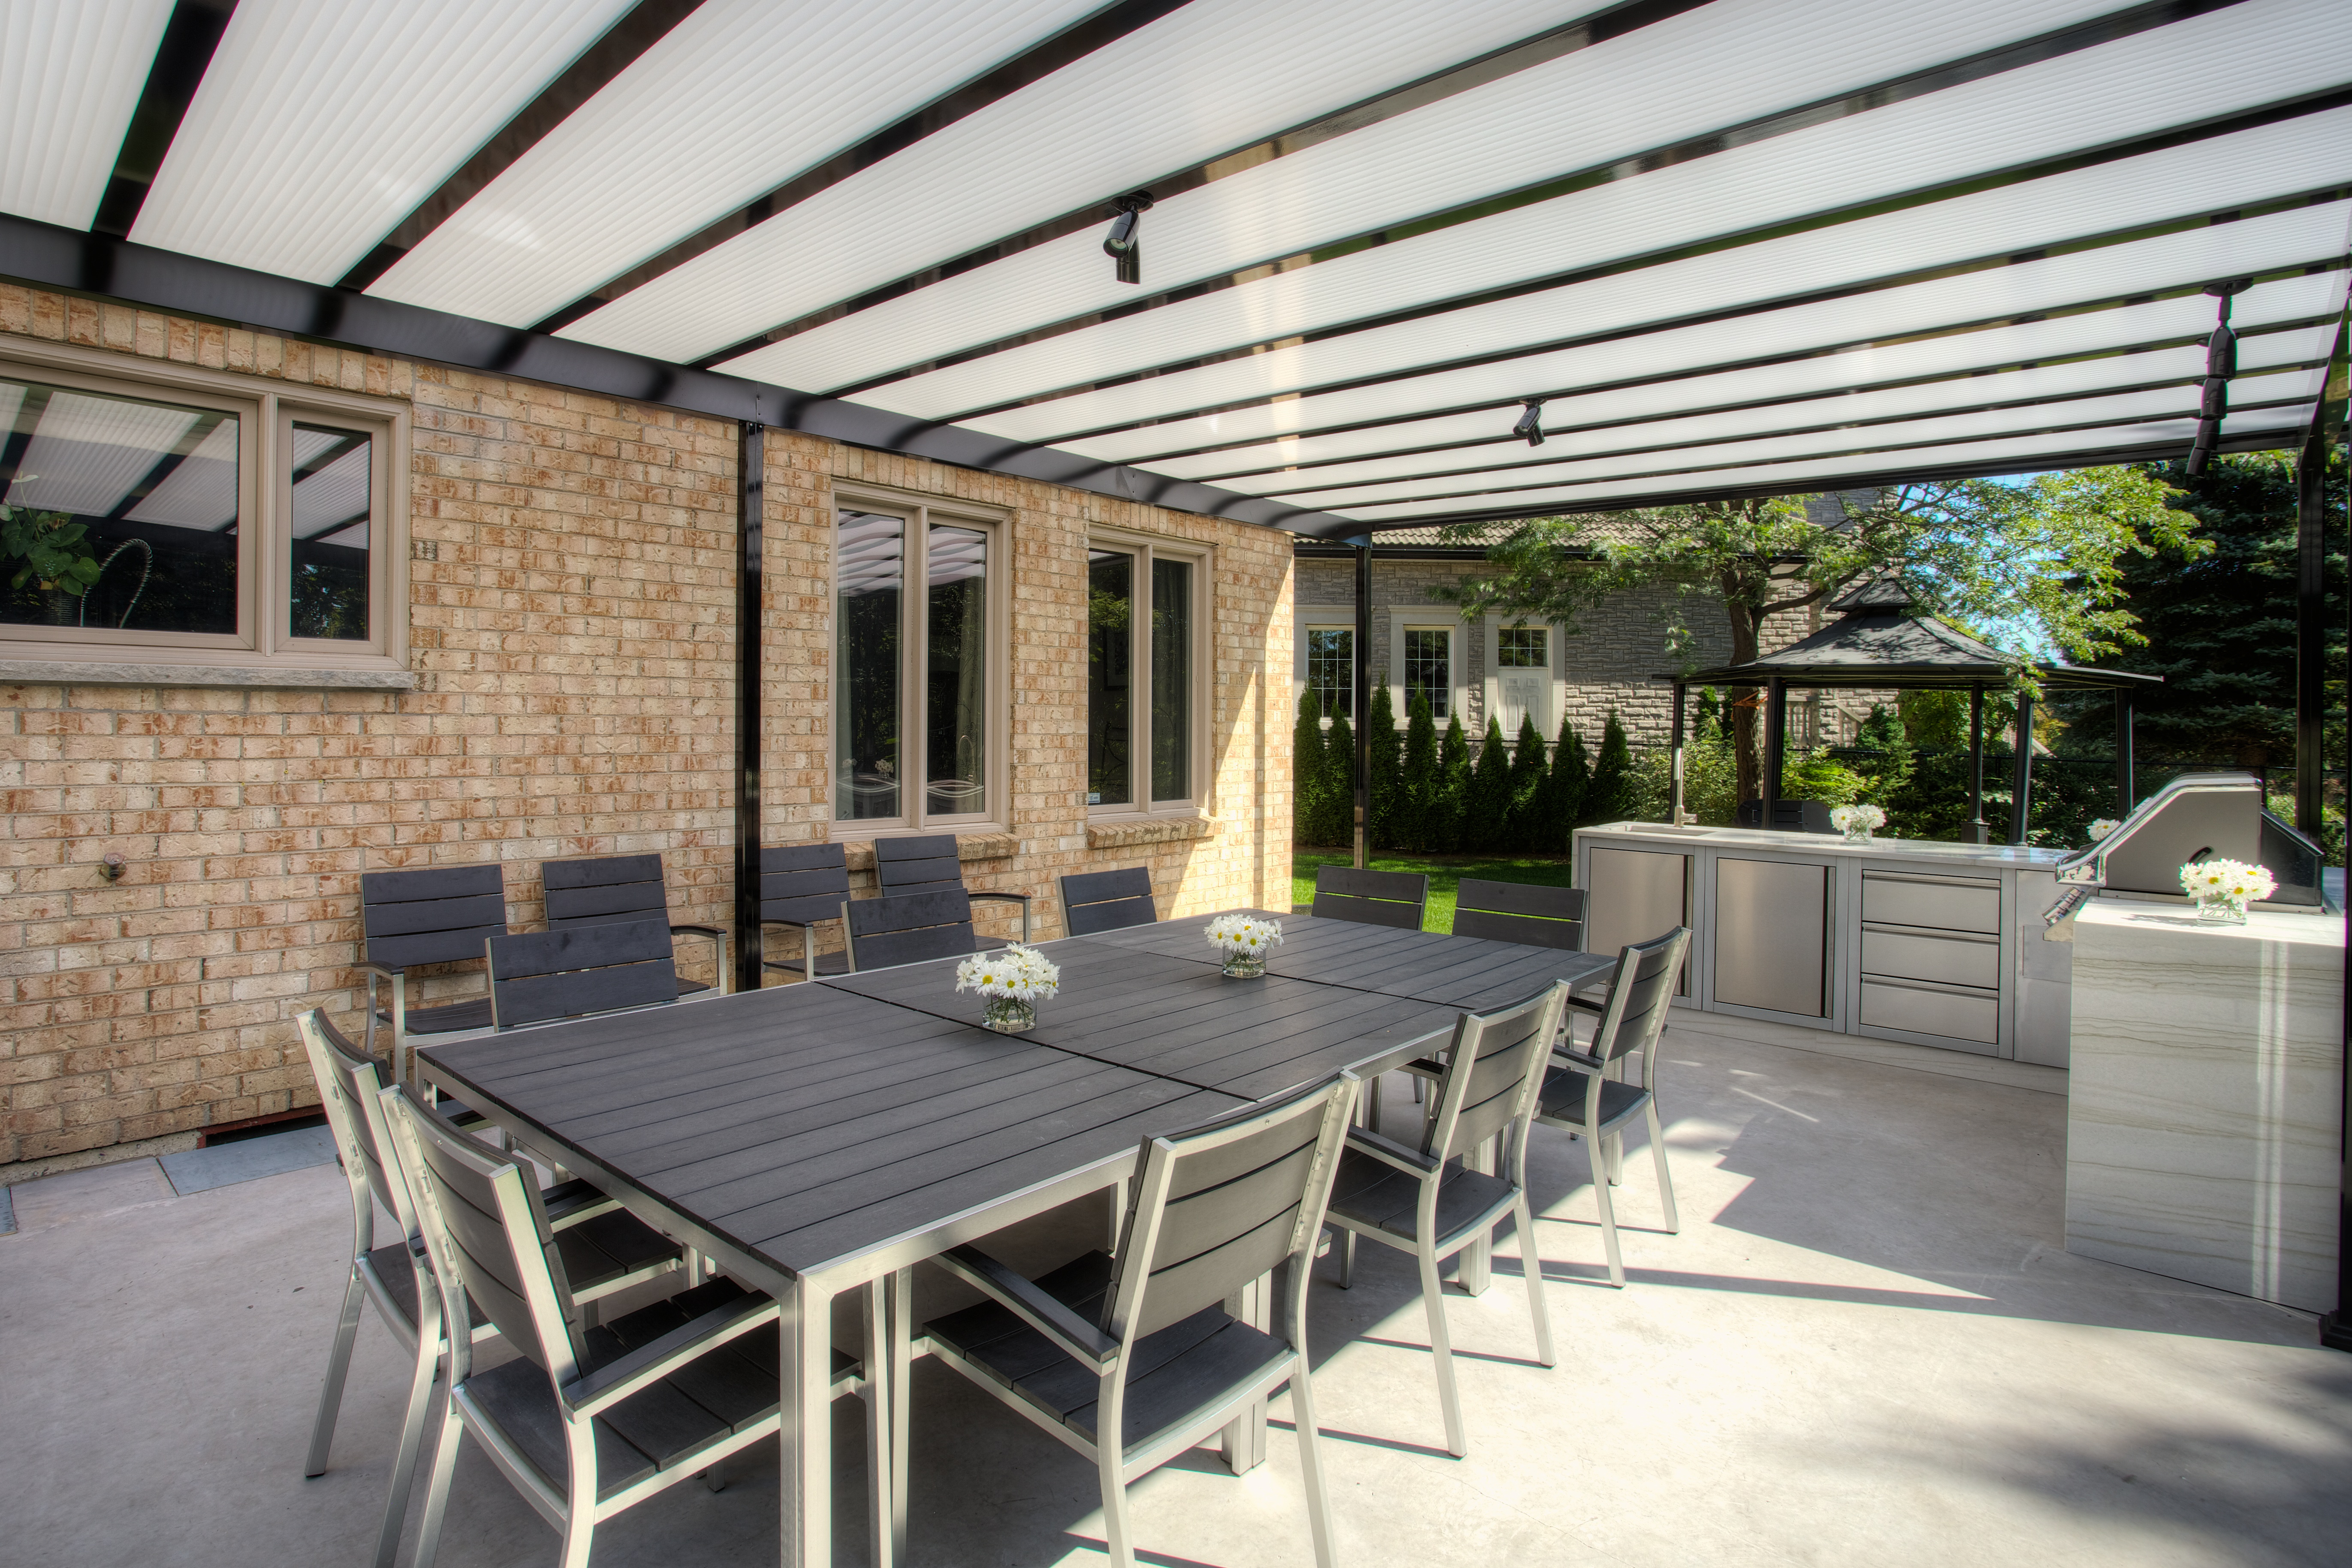 patio covering best of patio roof decor patio design central throughout proportions 5484 x 3656 - Patio Covering